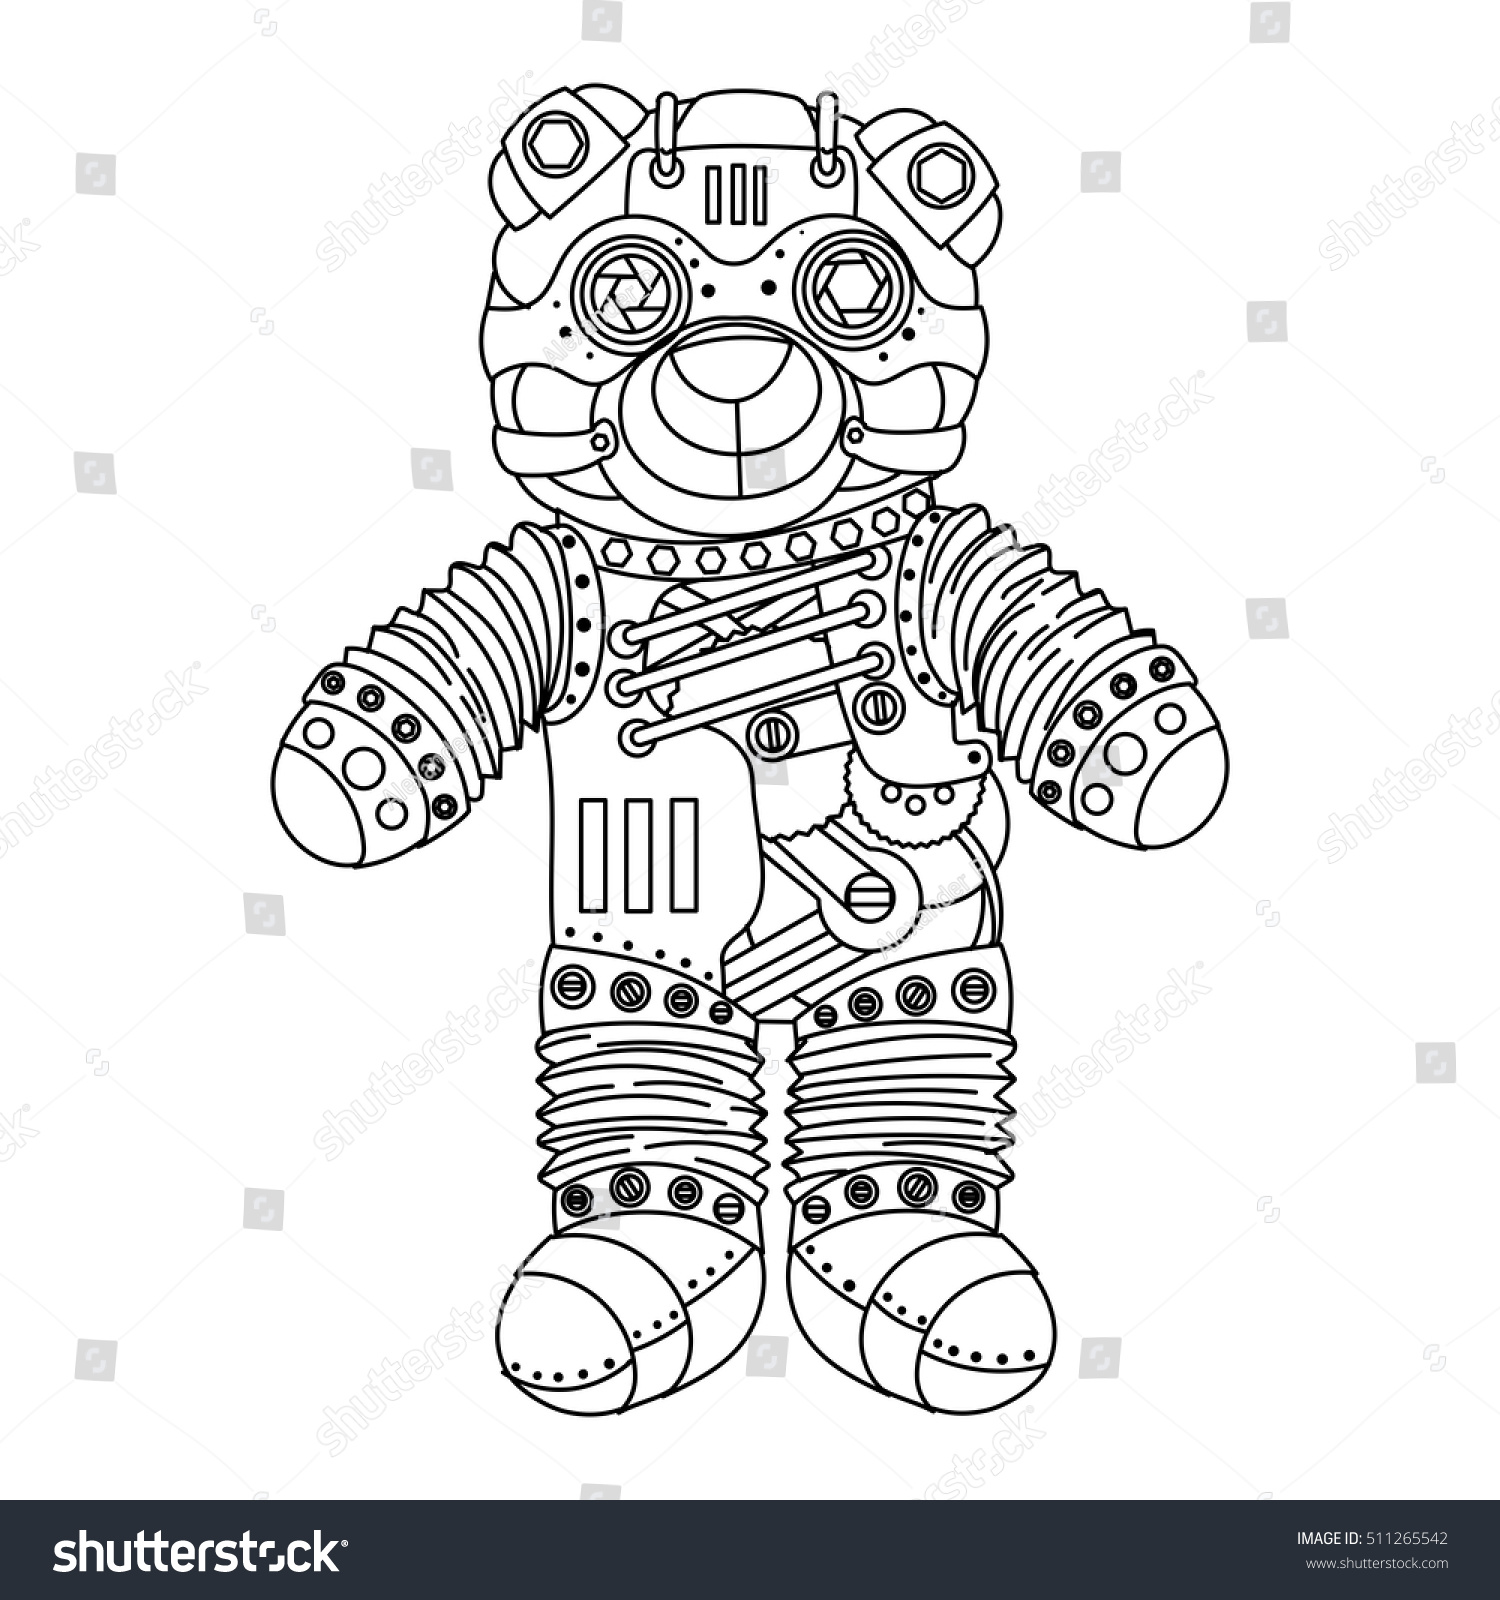 Steampunk Style Bear Mechanical Animal Coloring Book For Adult Vector Illustration